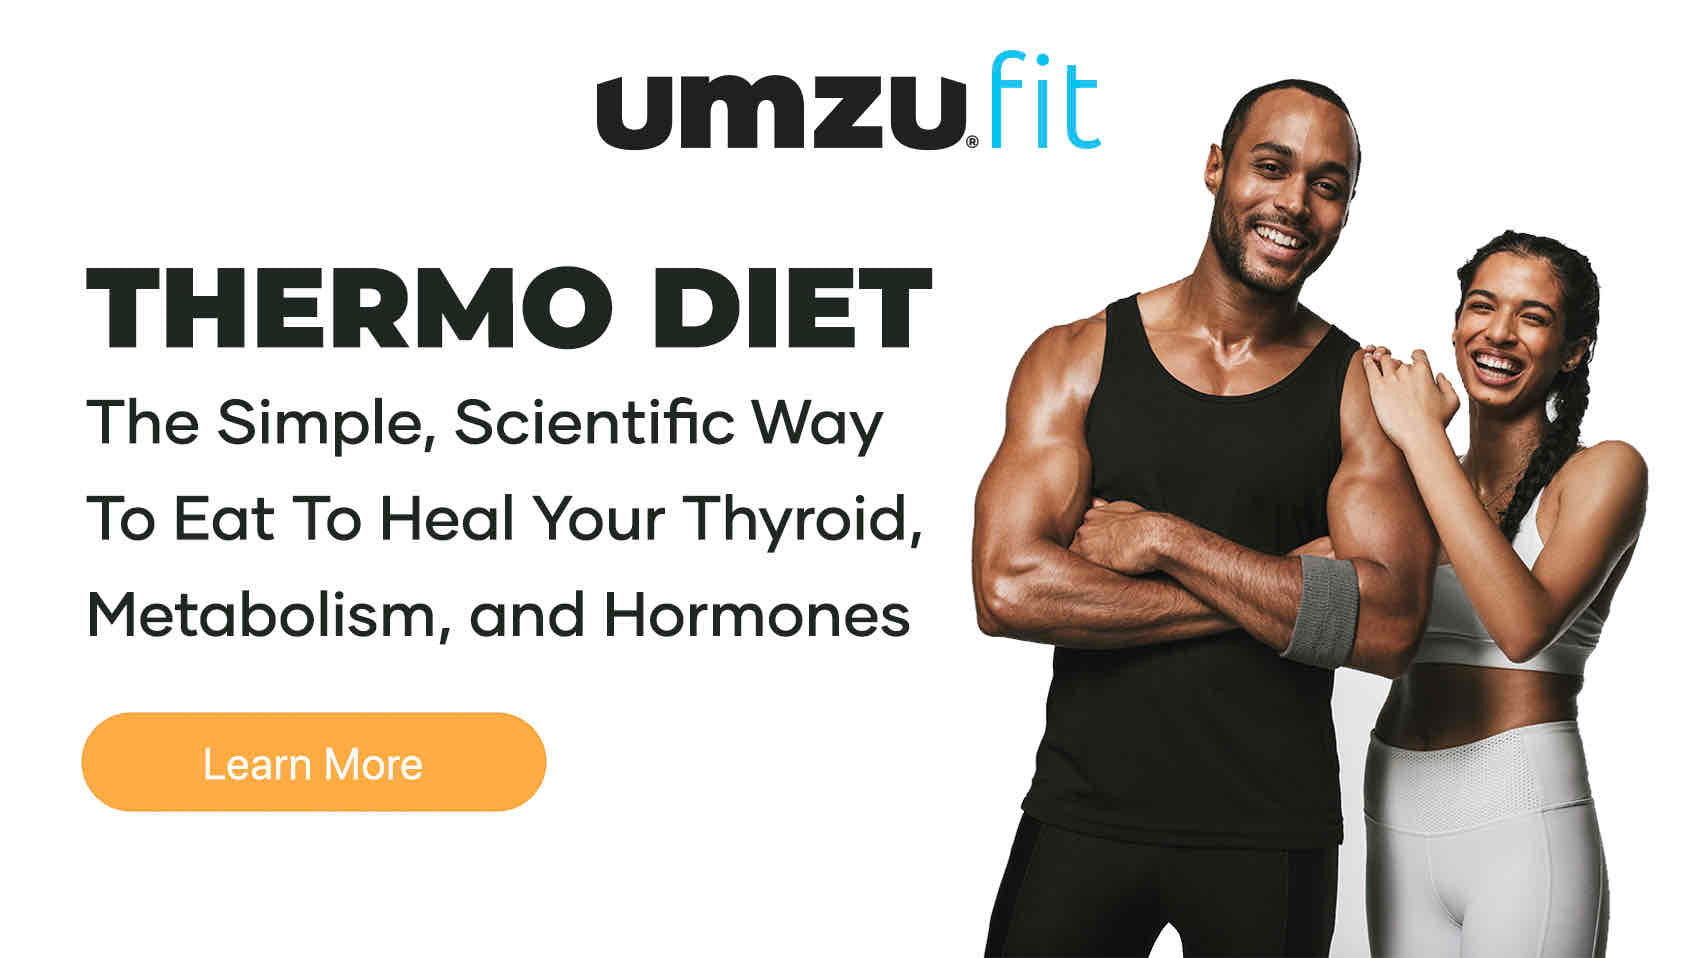 The Thermo Diet Program